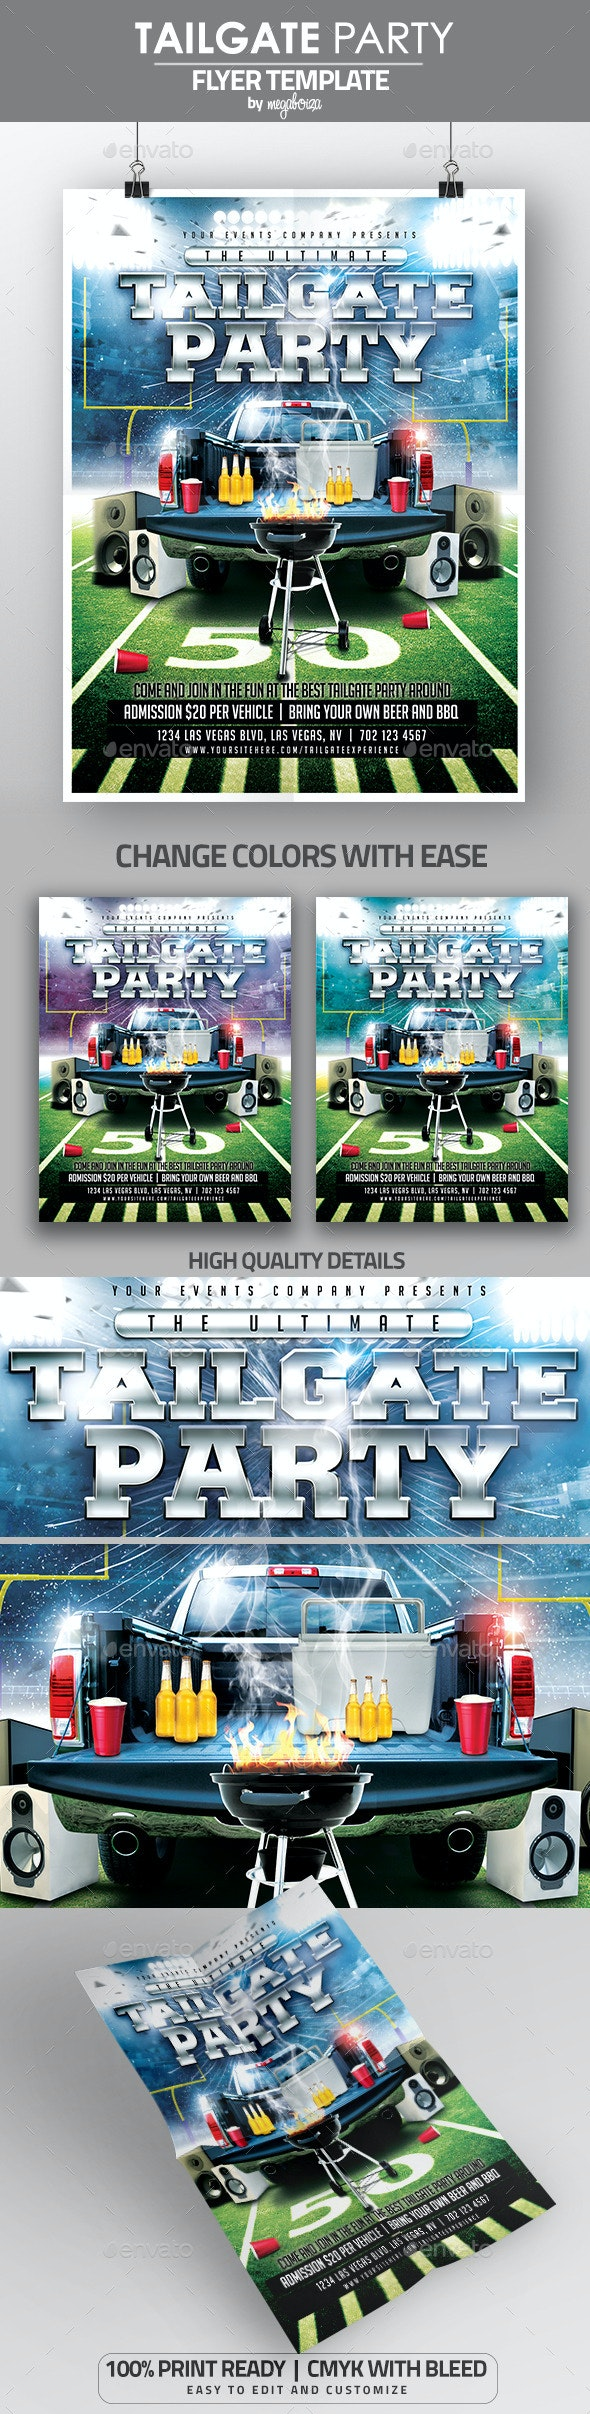 Ultimate Tailgate Party Flyer / Poster Template